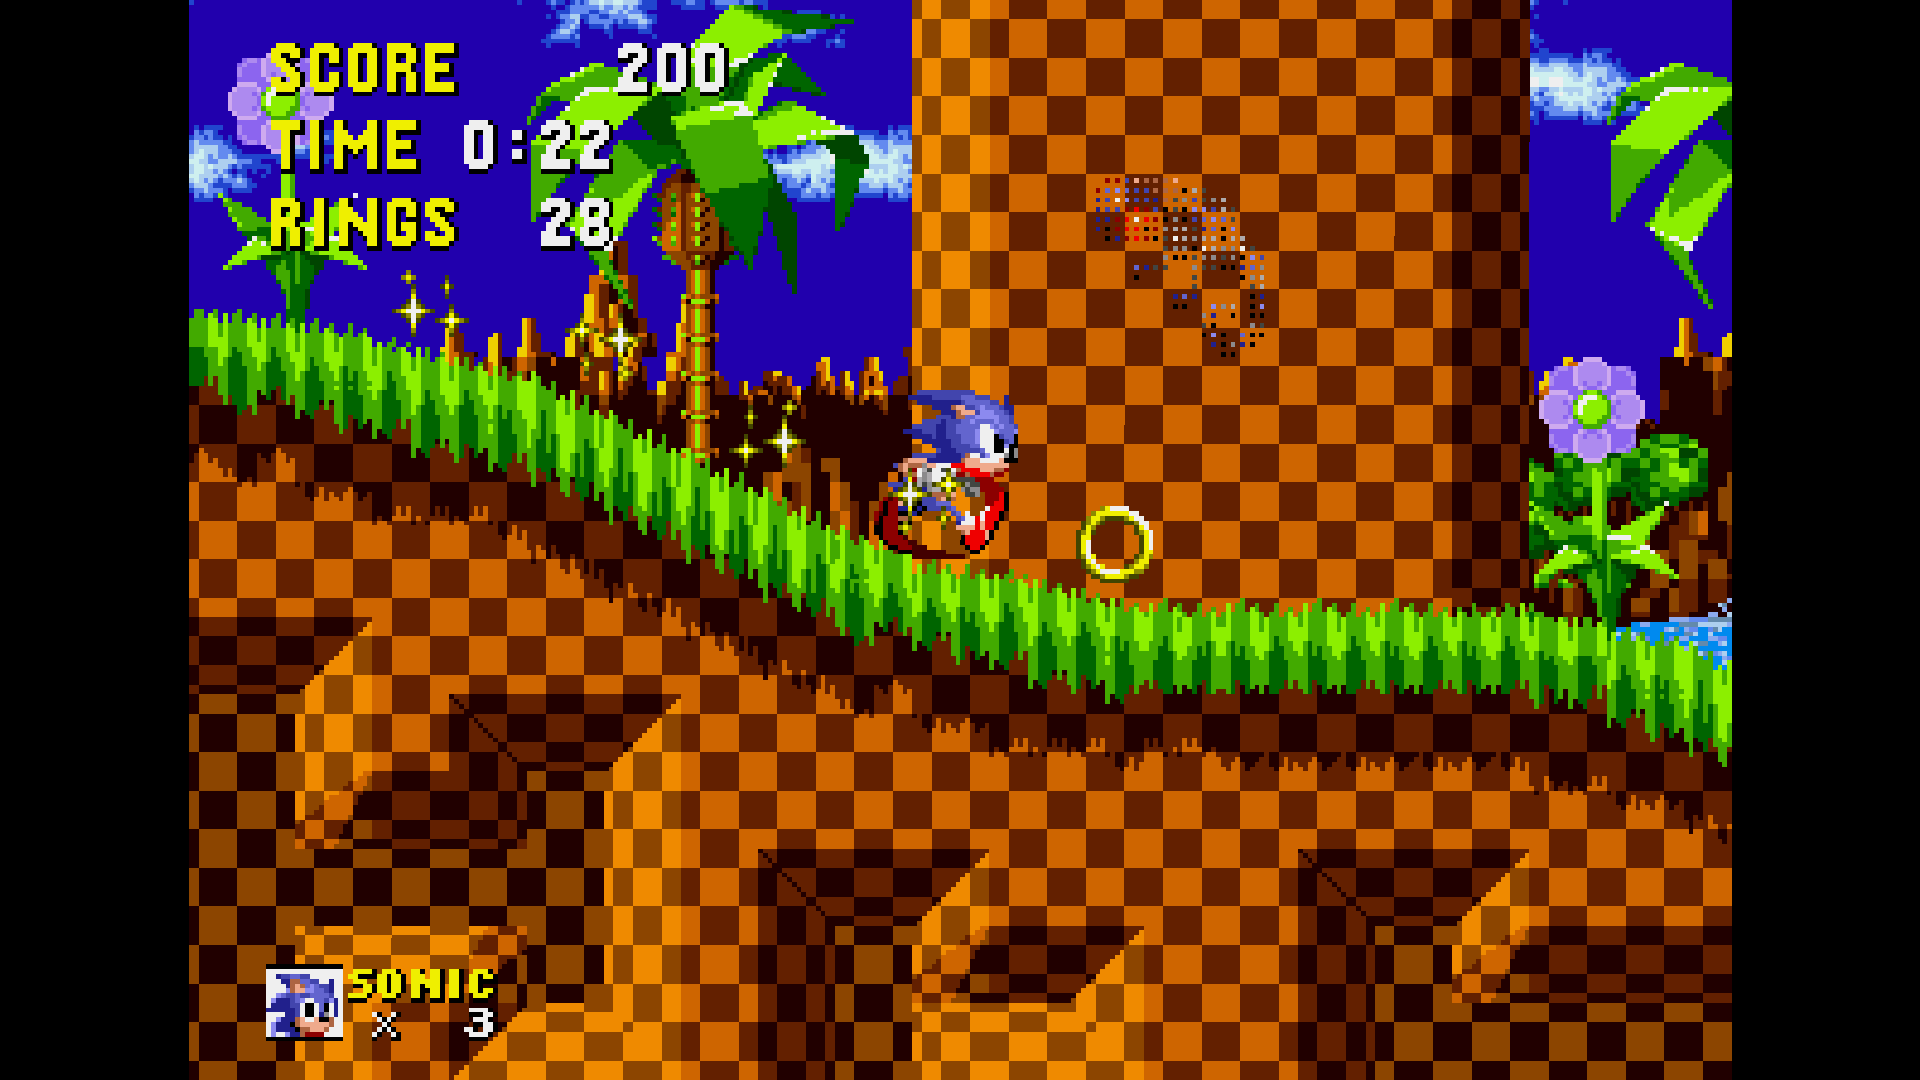 Retro Sonic Gameplay